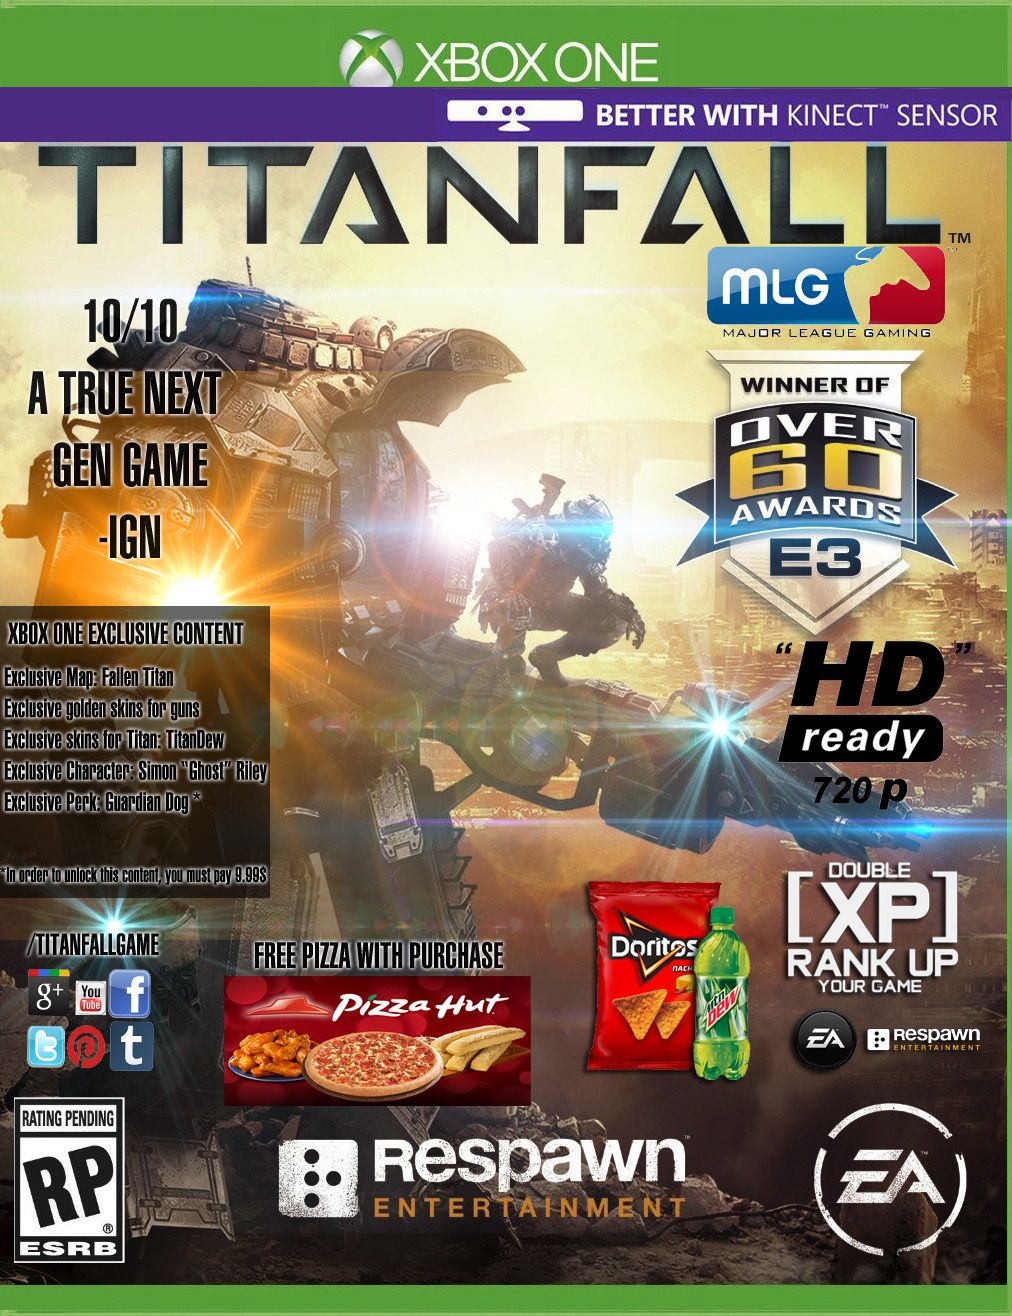 Mlg Fake Game Cases Google Search Titanfall League Gaming Games